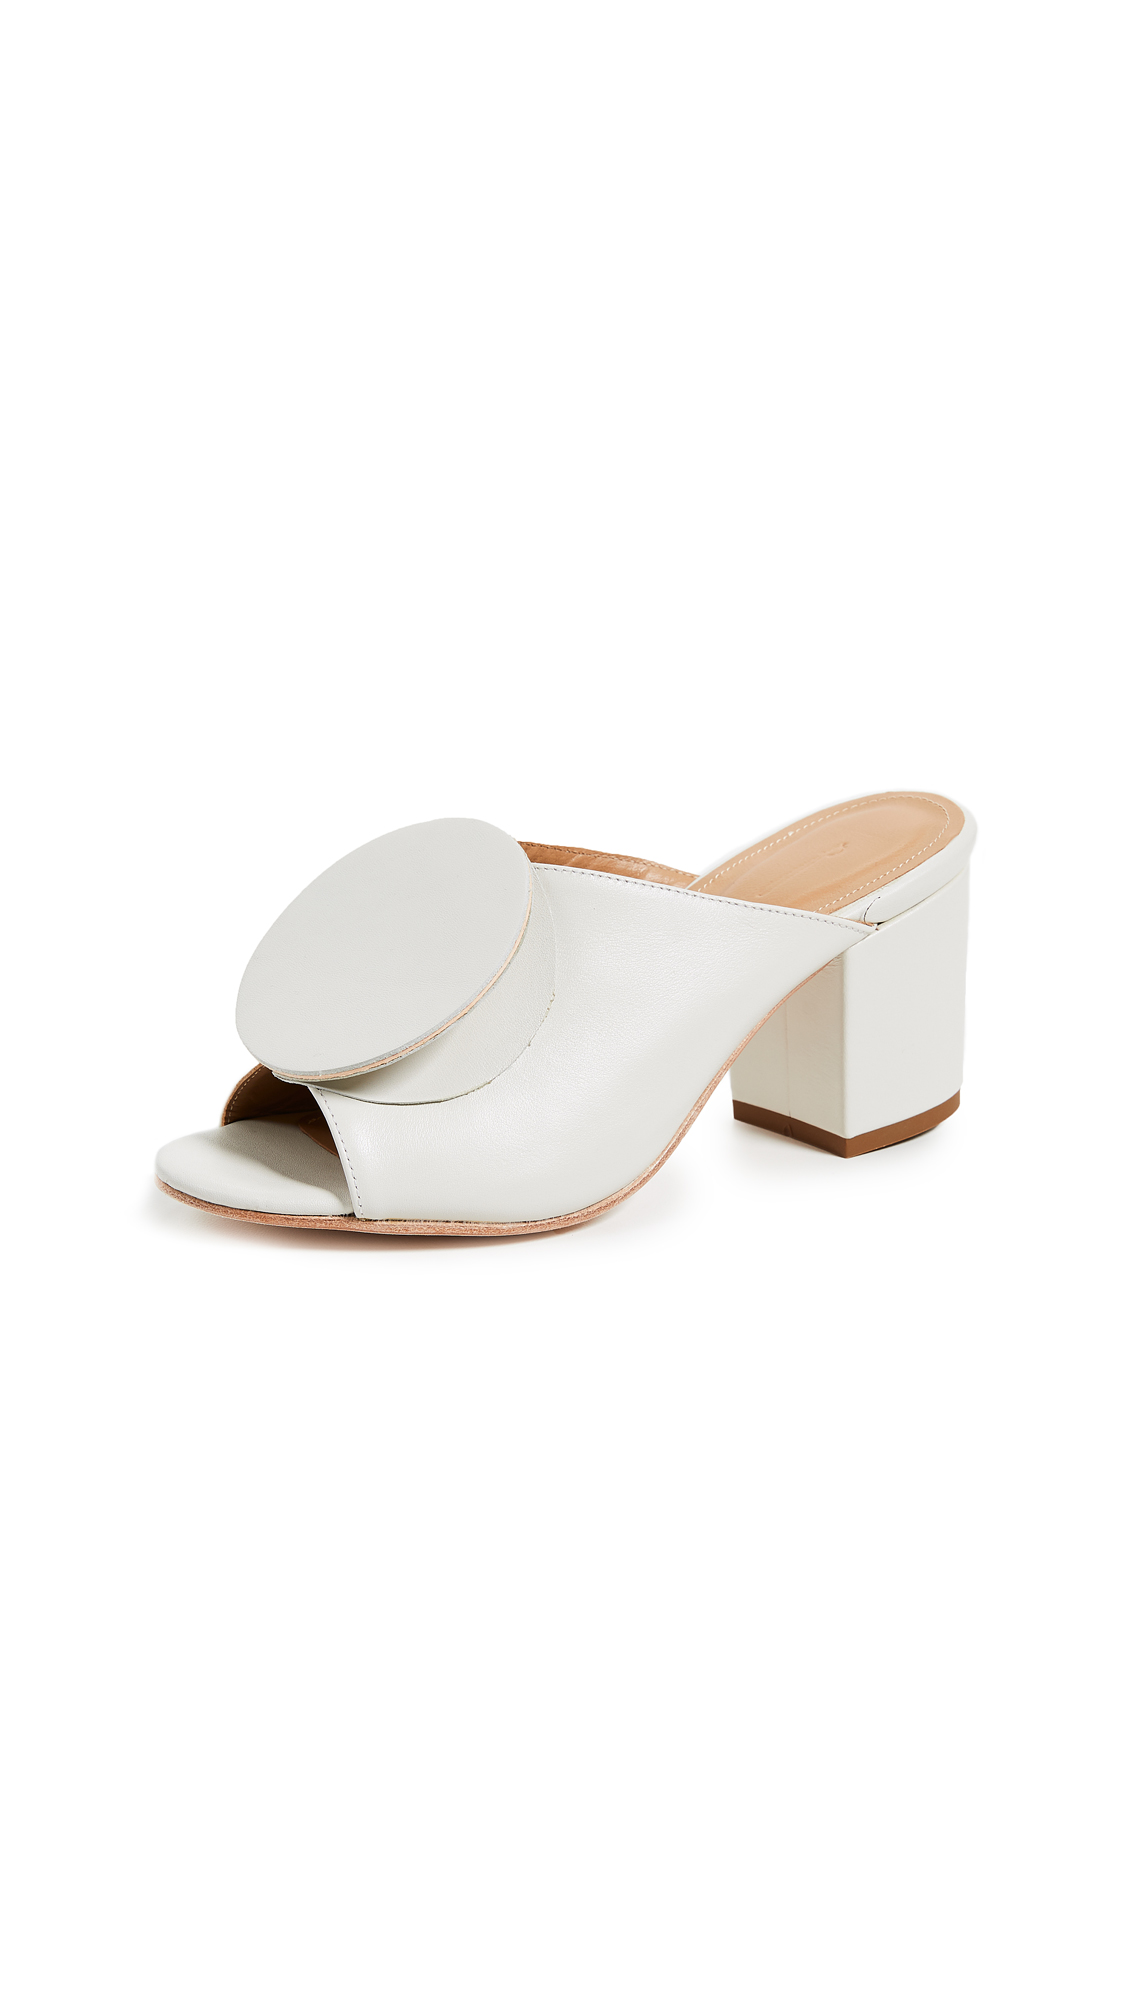 THE PALATINES Salio Origami Mules in White/White